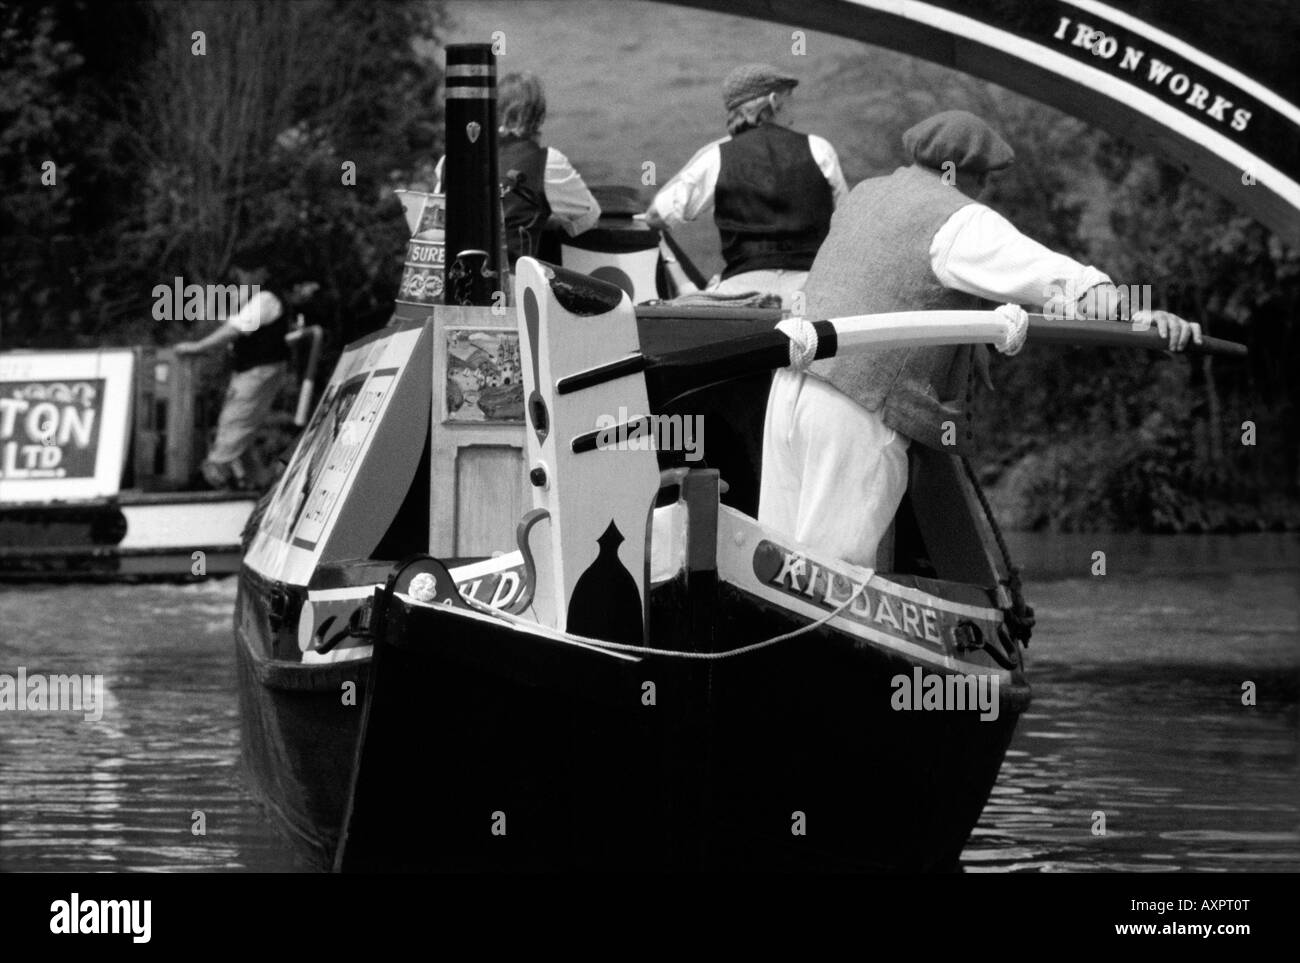 PICTURE CREDIT Doug Blane Narrowboat on the canal - Stock Image